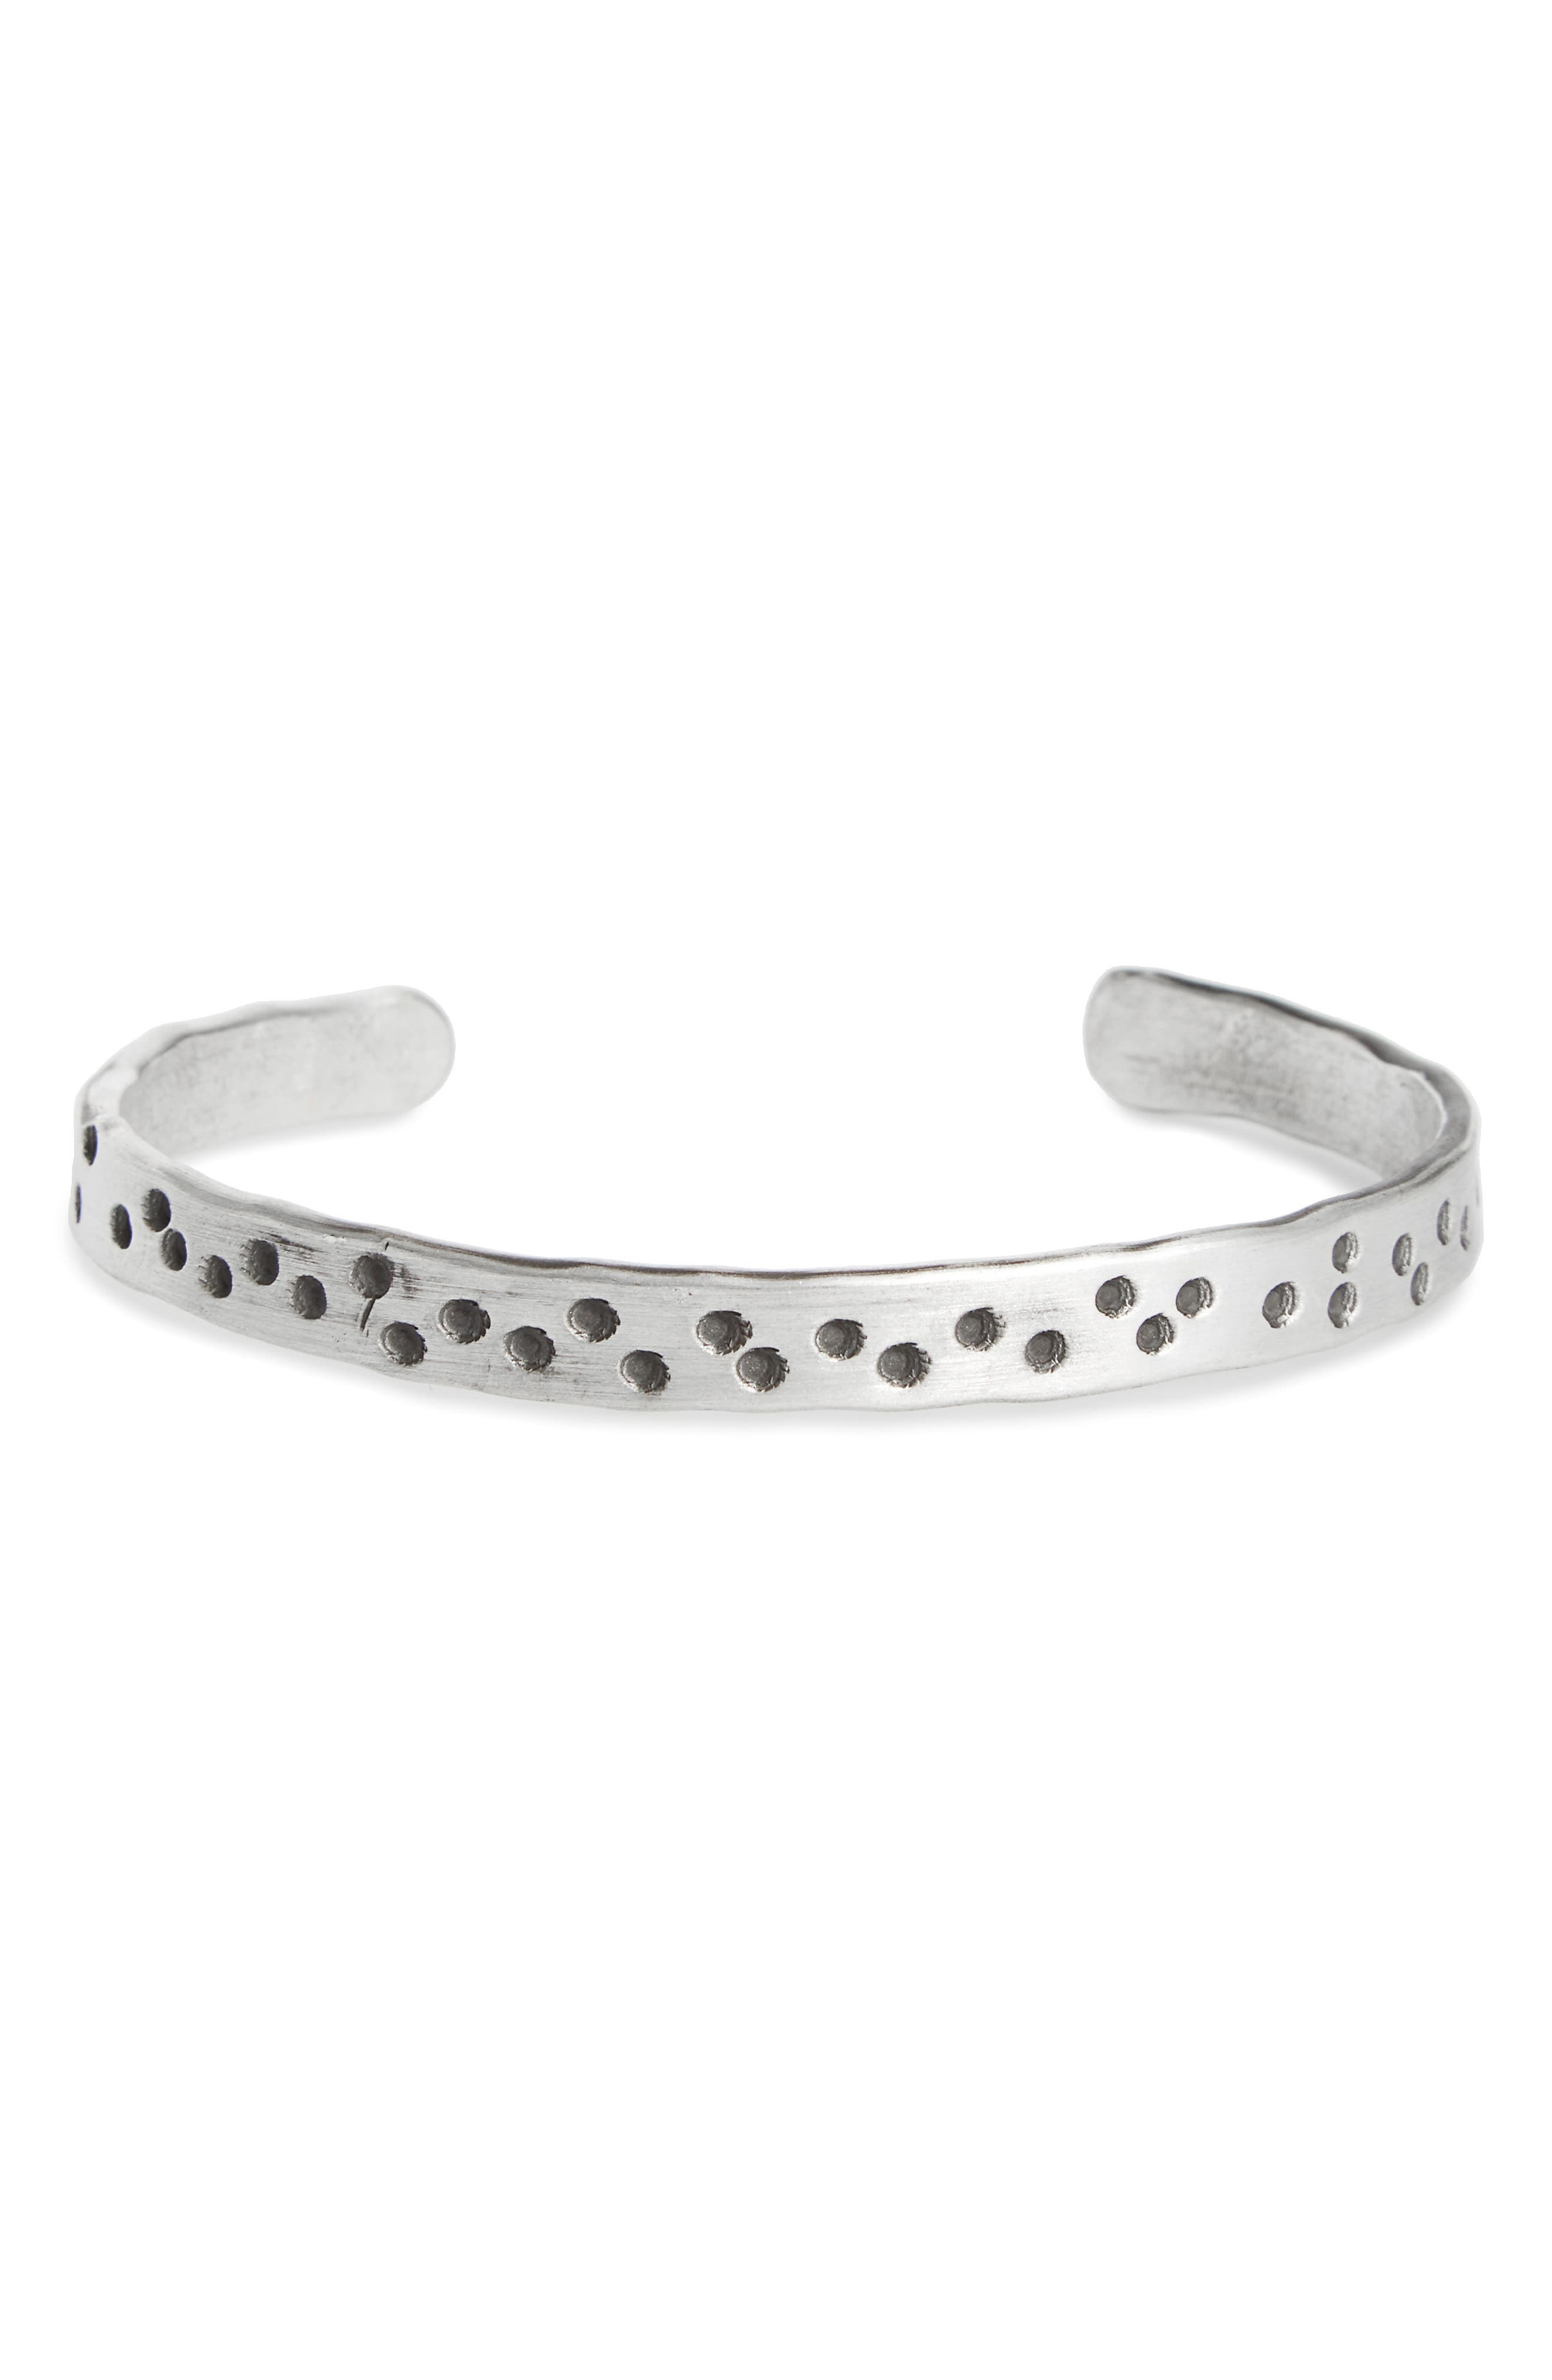 Sterling Silver Cuff Bracelet,                             Main thumbnail 1, color,                             040